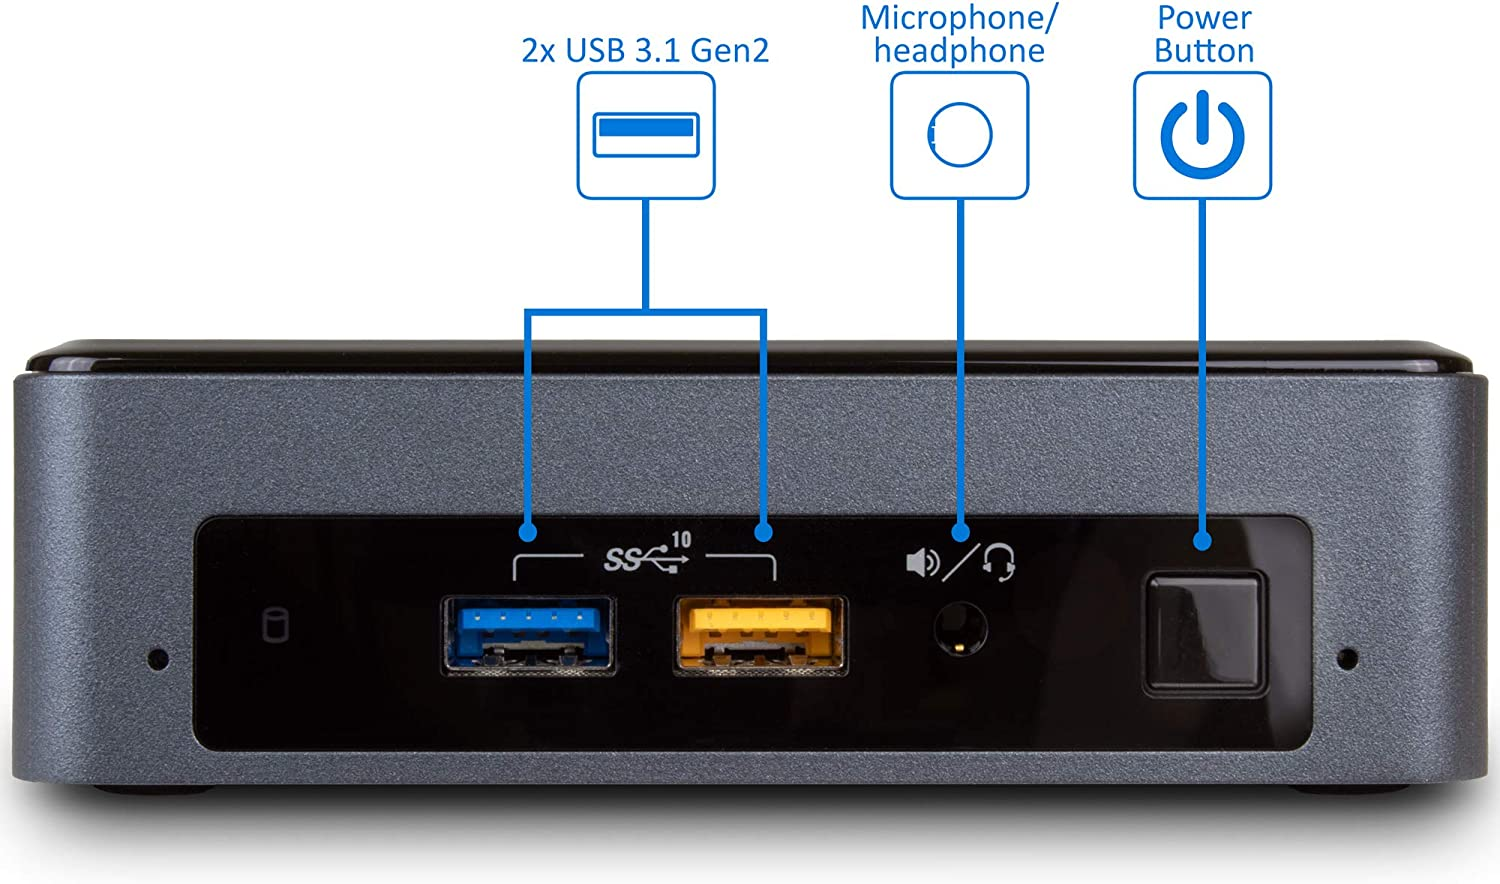 Card Reader Windows 10 Pro HDMI Wi-Fi 512GB SSD Intel NUC 8i7BEK Mini Desktop Intel Quad-Core i7-8559U Upto 4.5GHz Thunderbolt 3 Bluetooth 16GB RAM